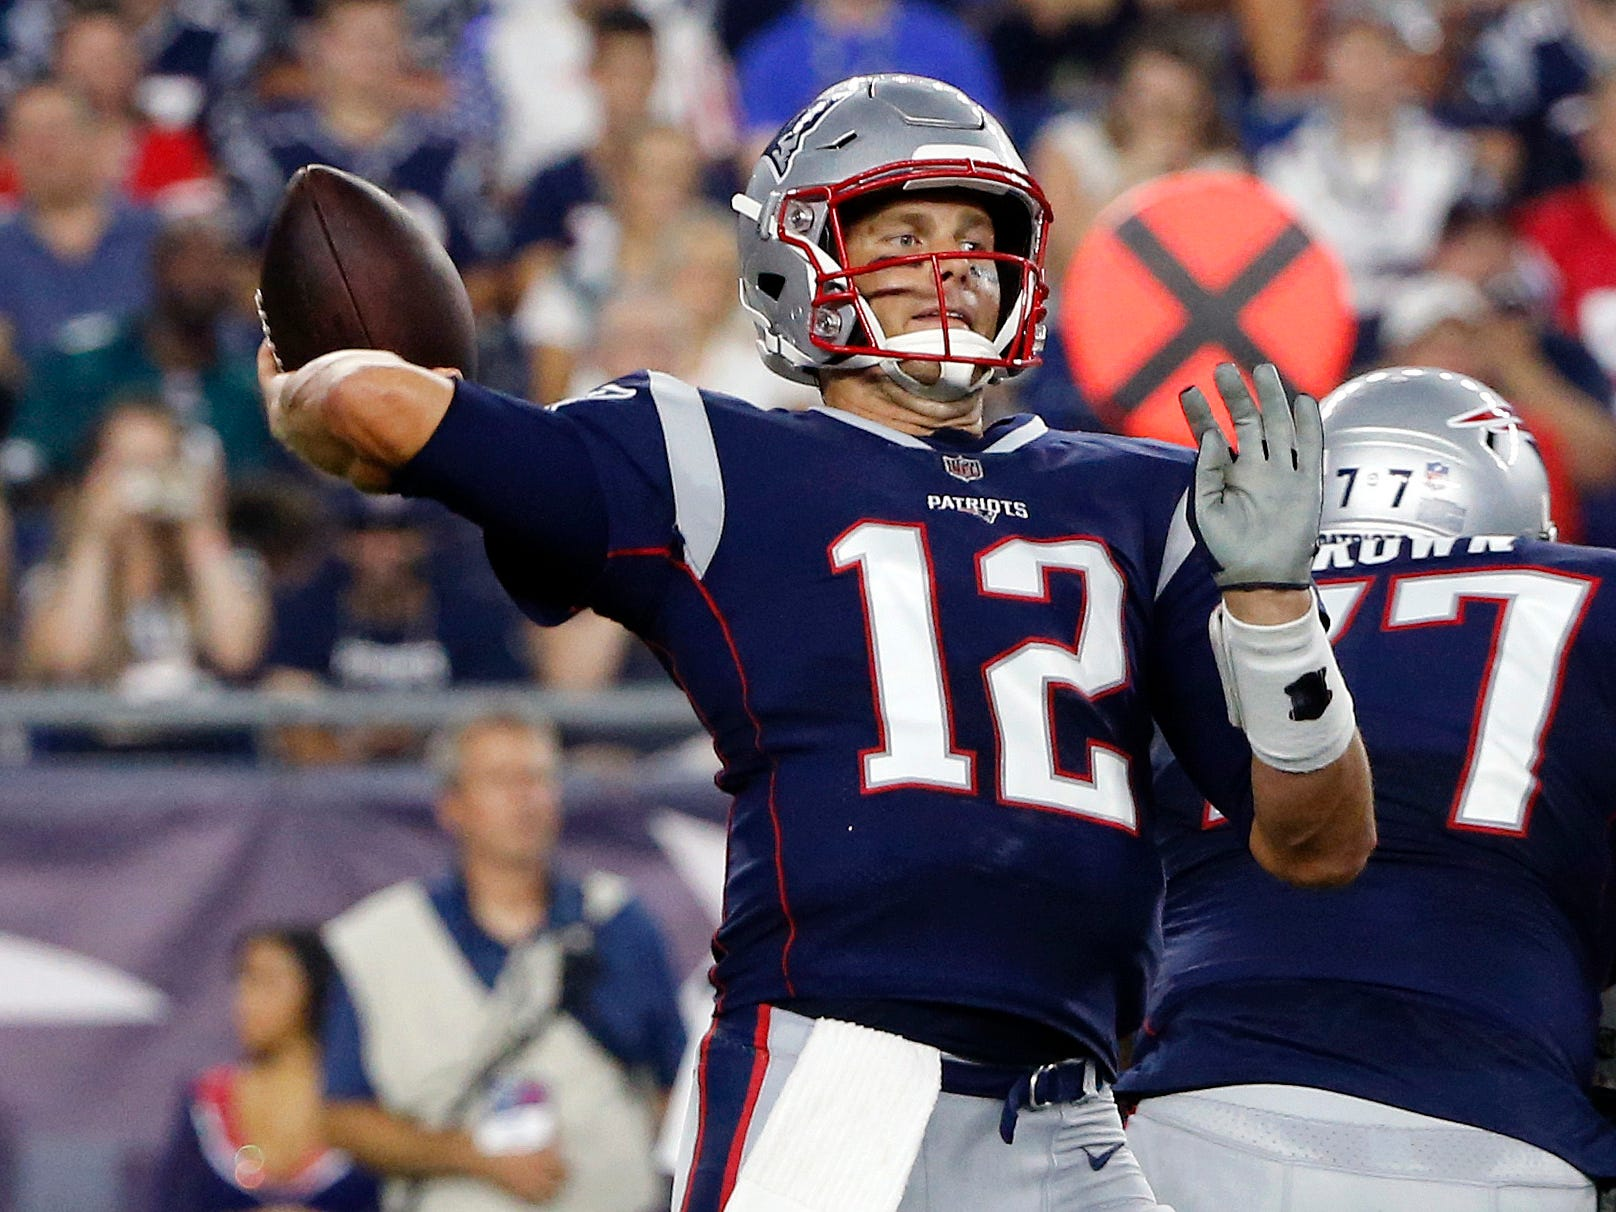 2. Minnesota Vikings at New England Patriots, Week 13, 4:25 p.m. Dec. 2, Fox: It's a possible Super Bowl preview. You have to like the Patriots' chances at home, but the Vikings defense and a good run game under Dalvin Cook should keep things close.